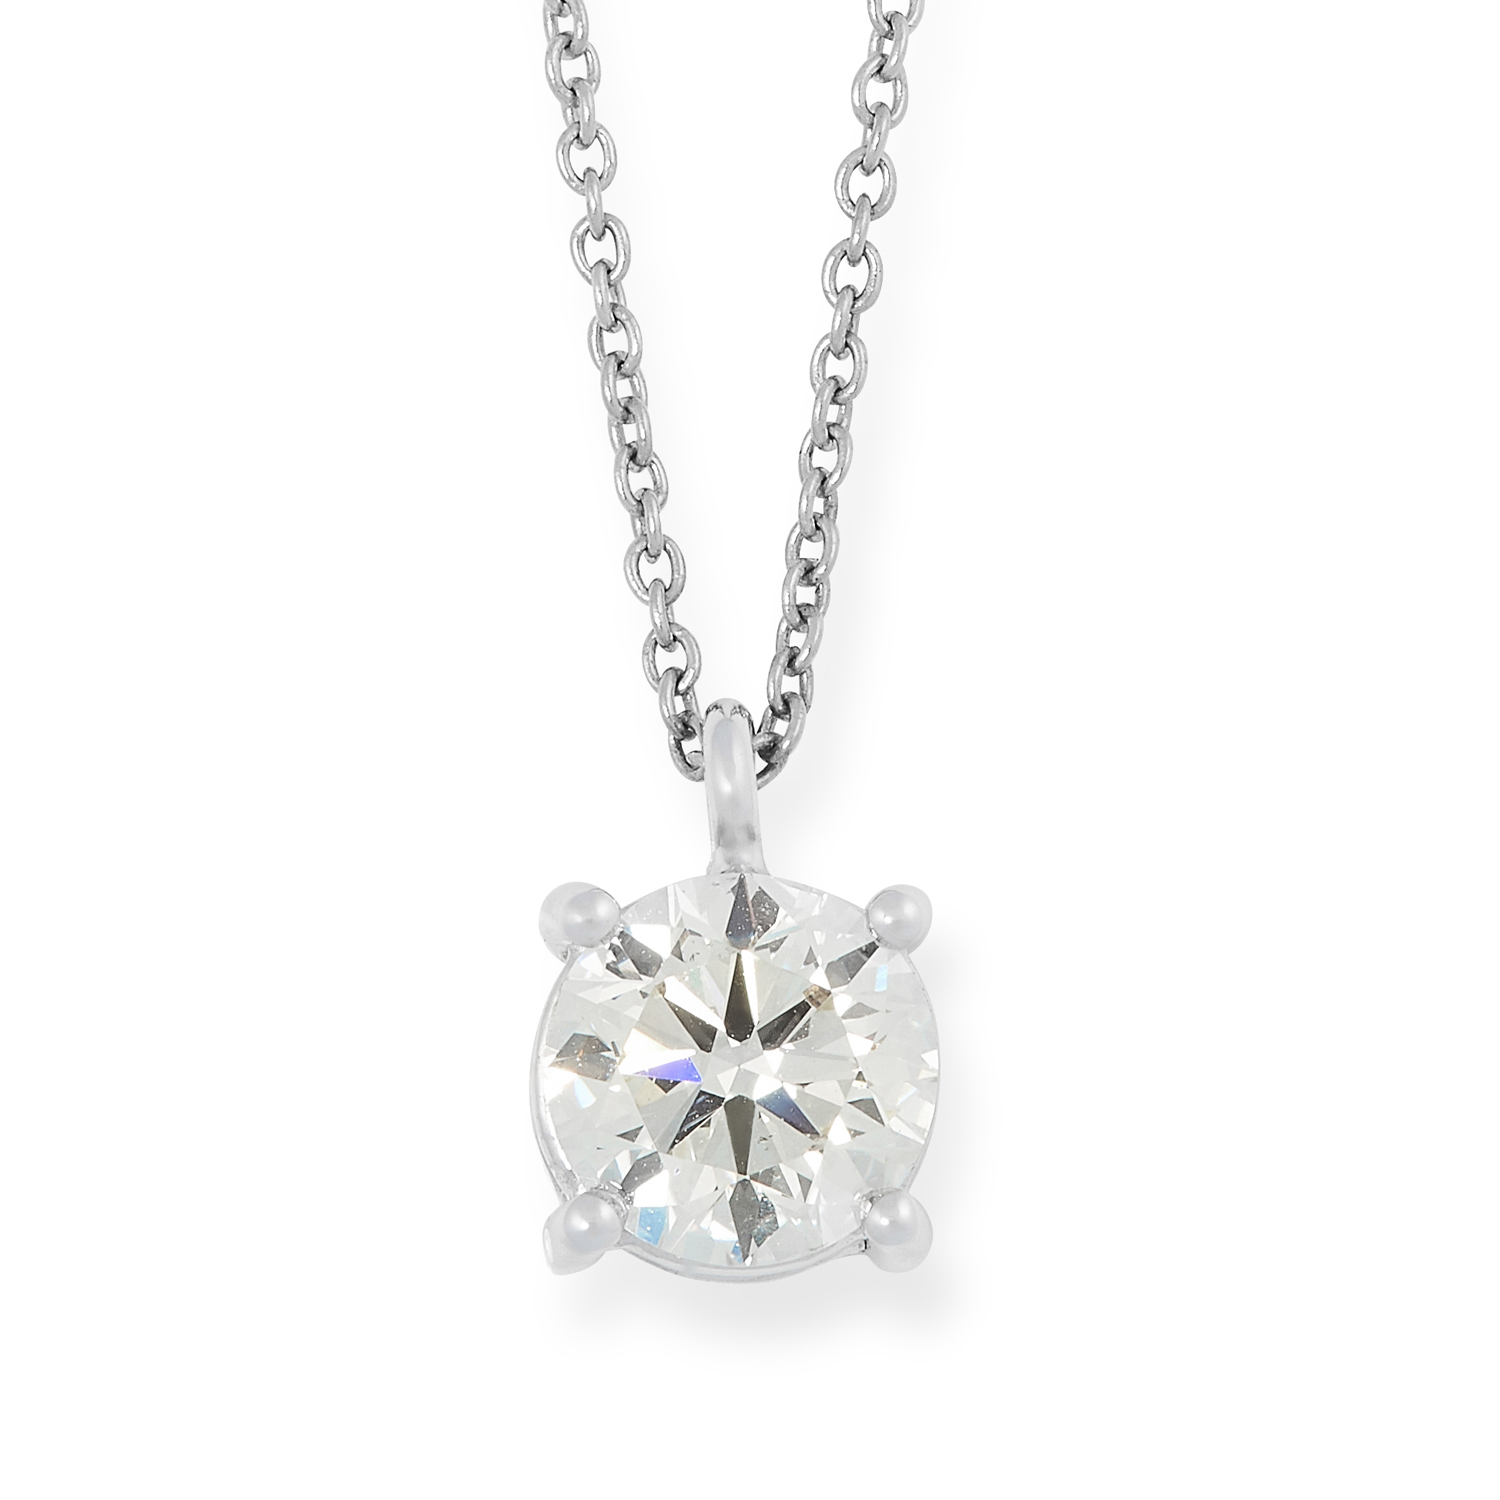 A SOLITAIRE DIAMOND PENDANT AND CHAIN set with a round cut diamond of 0.85 carats, tests as 18ct